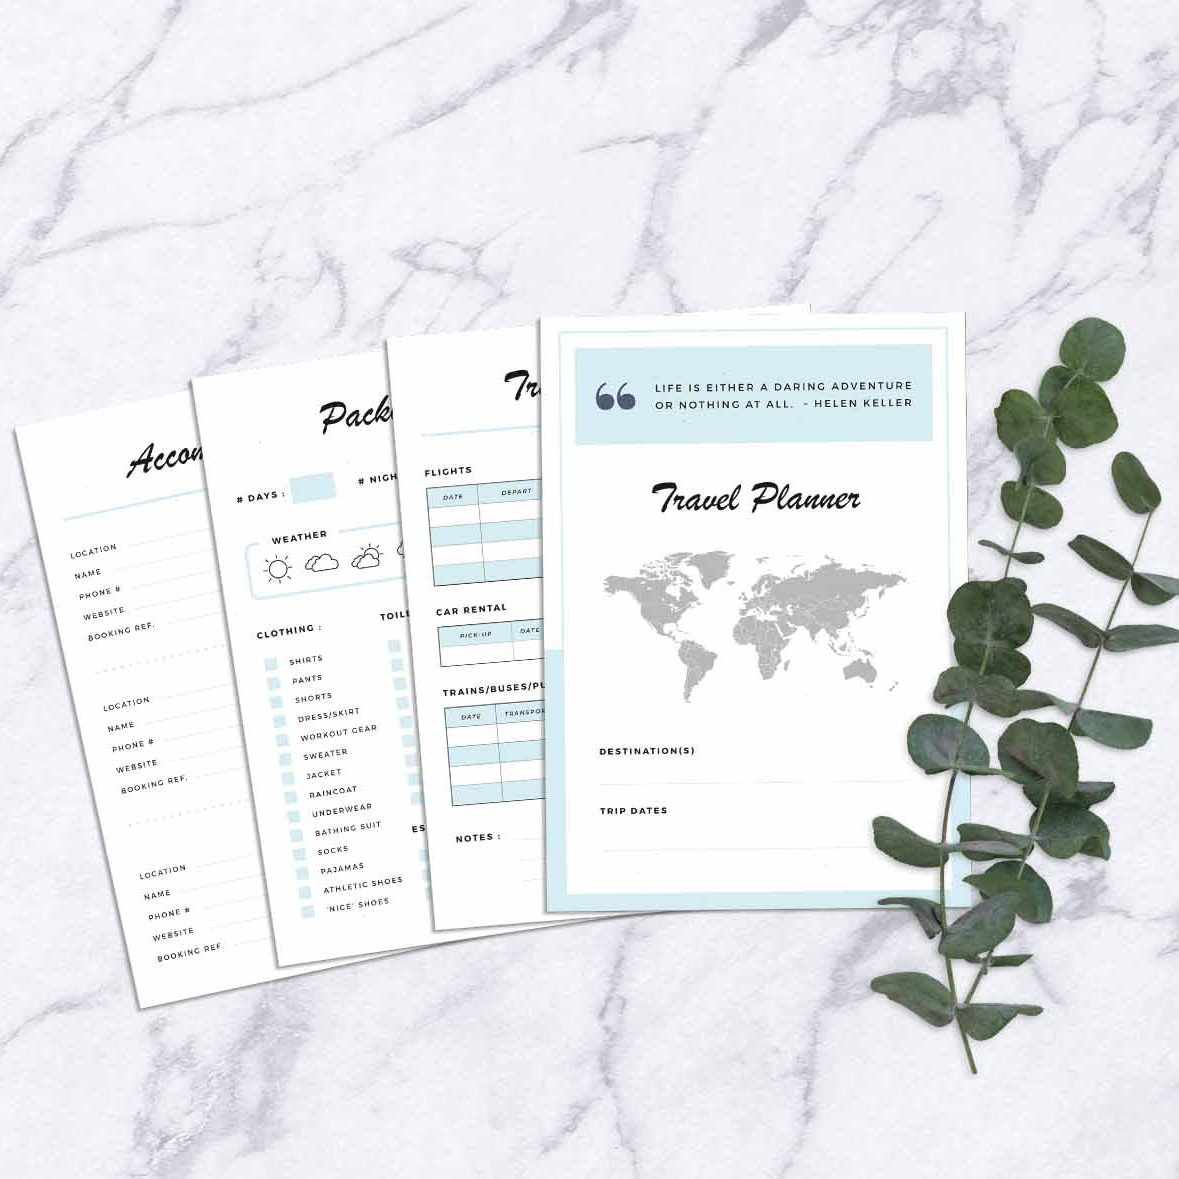 Four pages of a travel planner on a marble table next to greenery